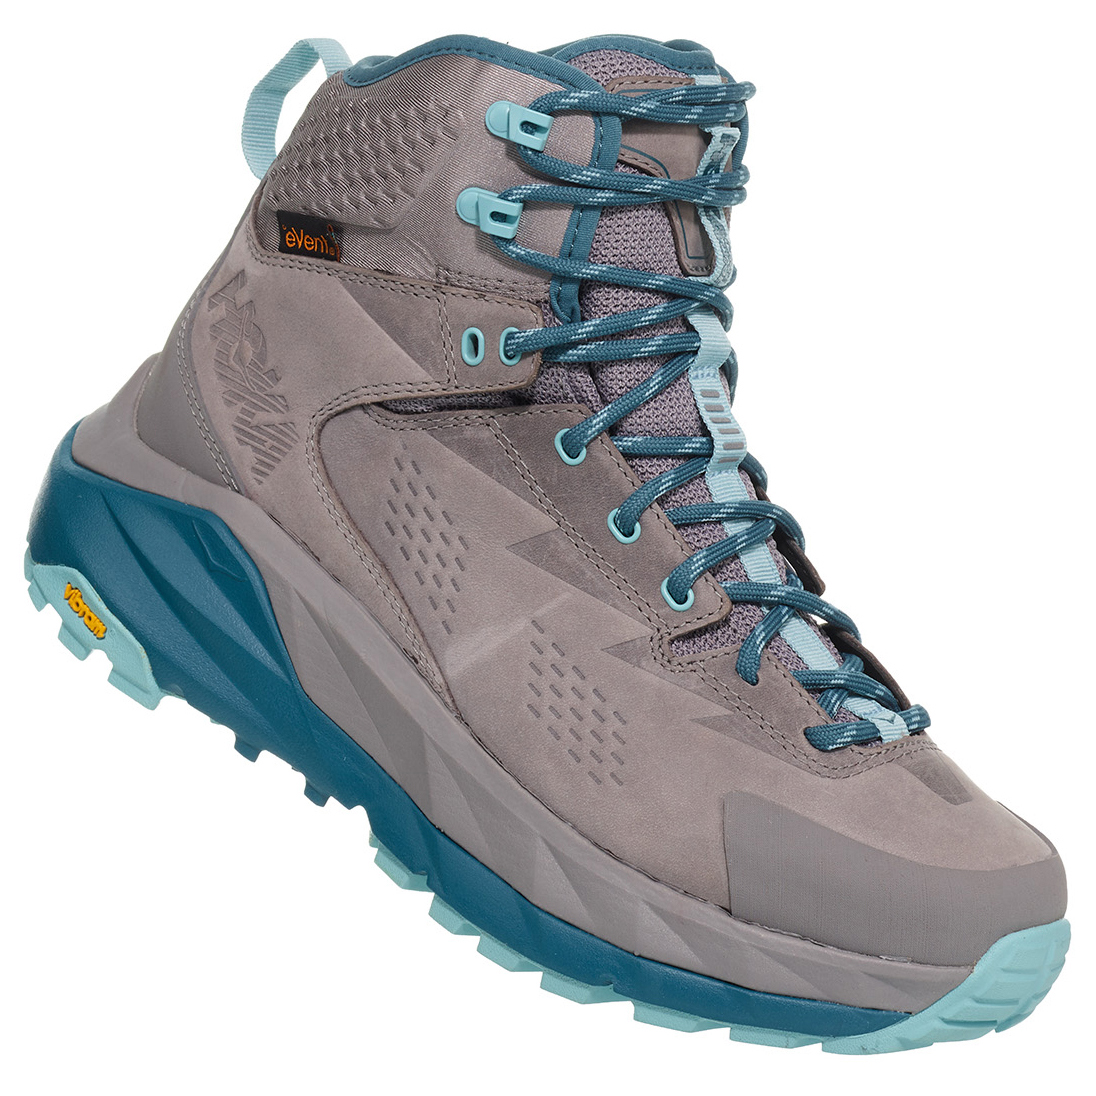 e15ebf70c45 Hoka One One - Women's Sky Kaha - Walking boots - Frost Gray / Aqua Haze |  10 (US)